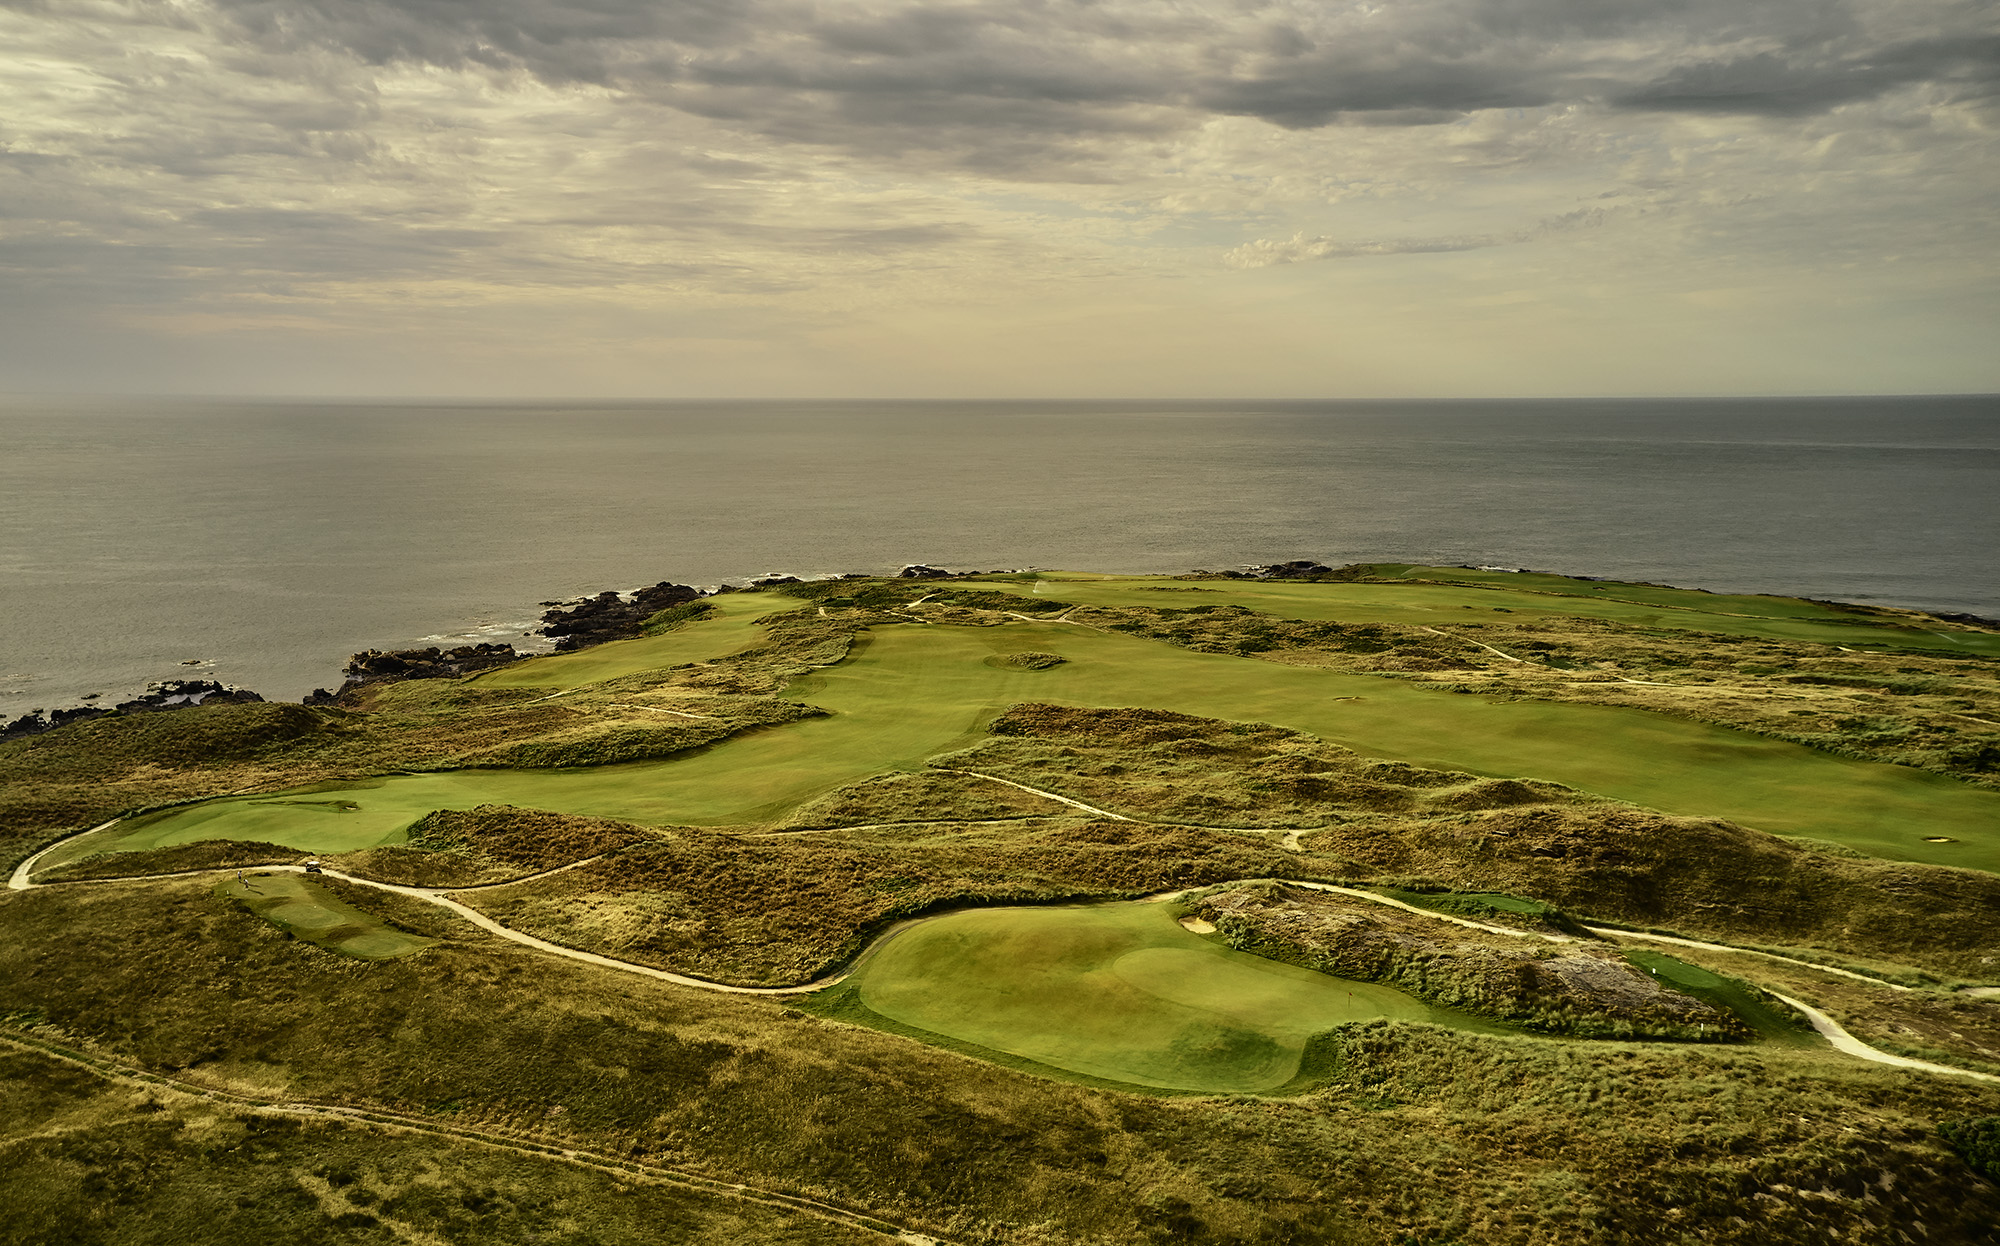 Cape Wickham Golf Course - King Island, Australia - Stephen Denton Photography -  Los Angeles, California based  Commercial Photographer